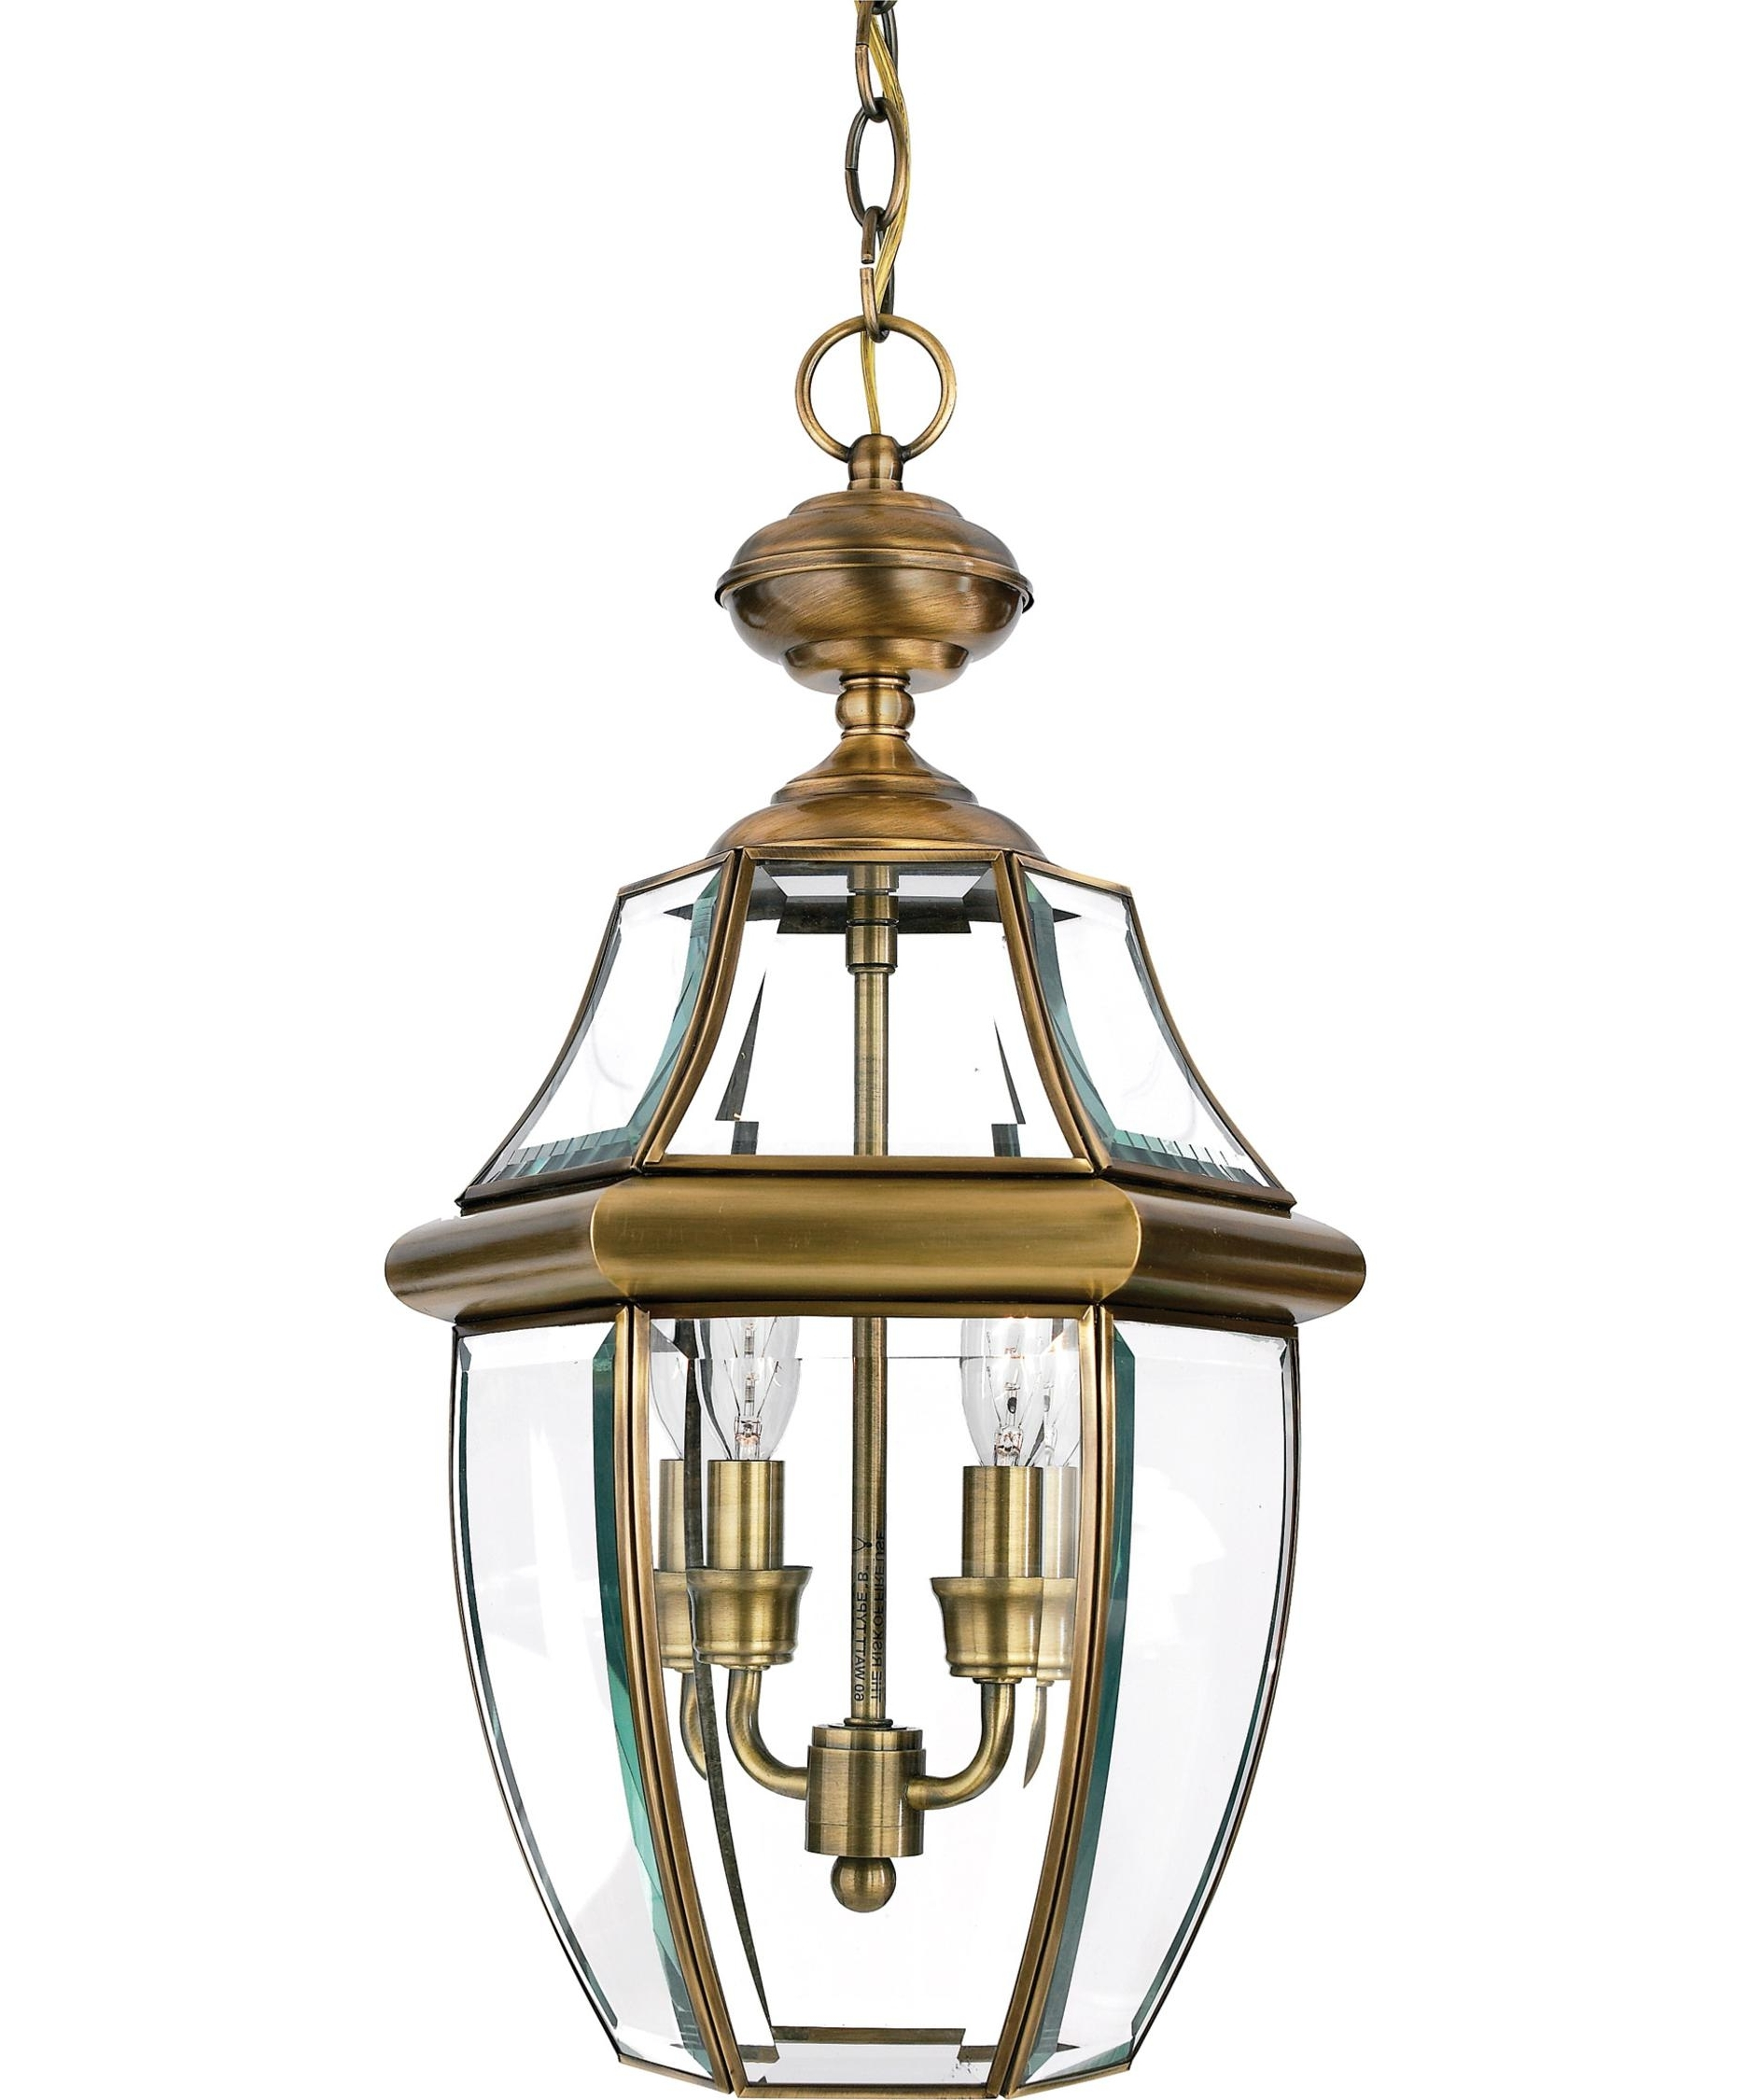 Quoizel Ny1178 Newbury 10 Inch Wide 2 Light Outdoor Hanging Lantern For Popular Gold Outdoor Lanterns (Gallery 8 of 20)